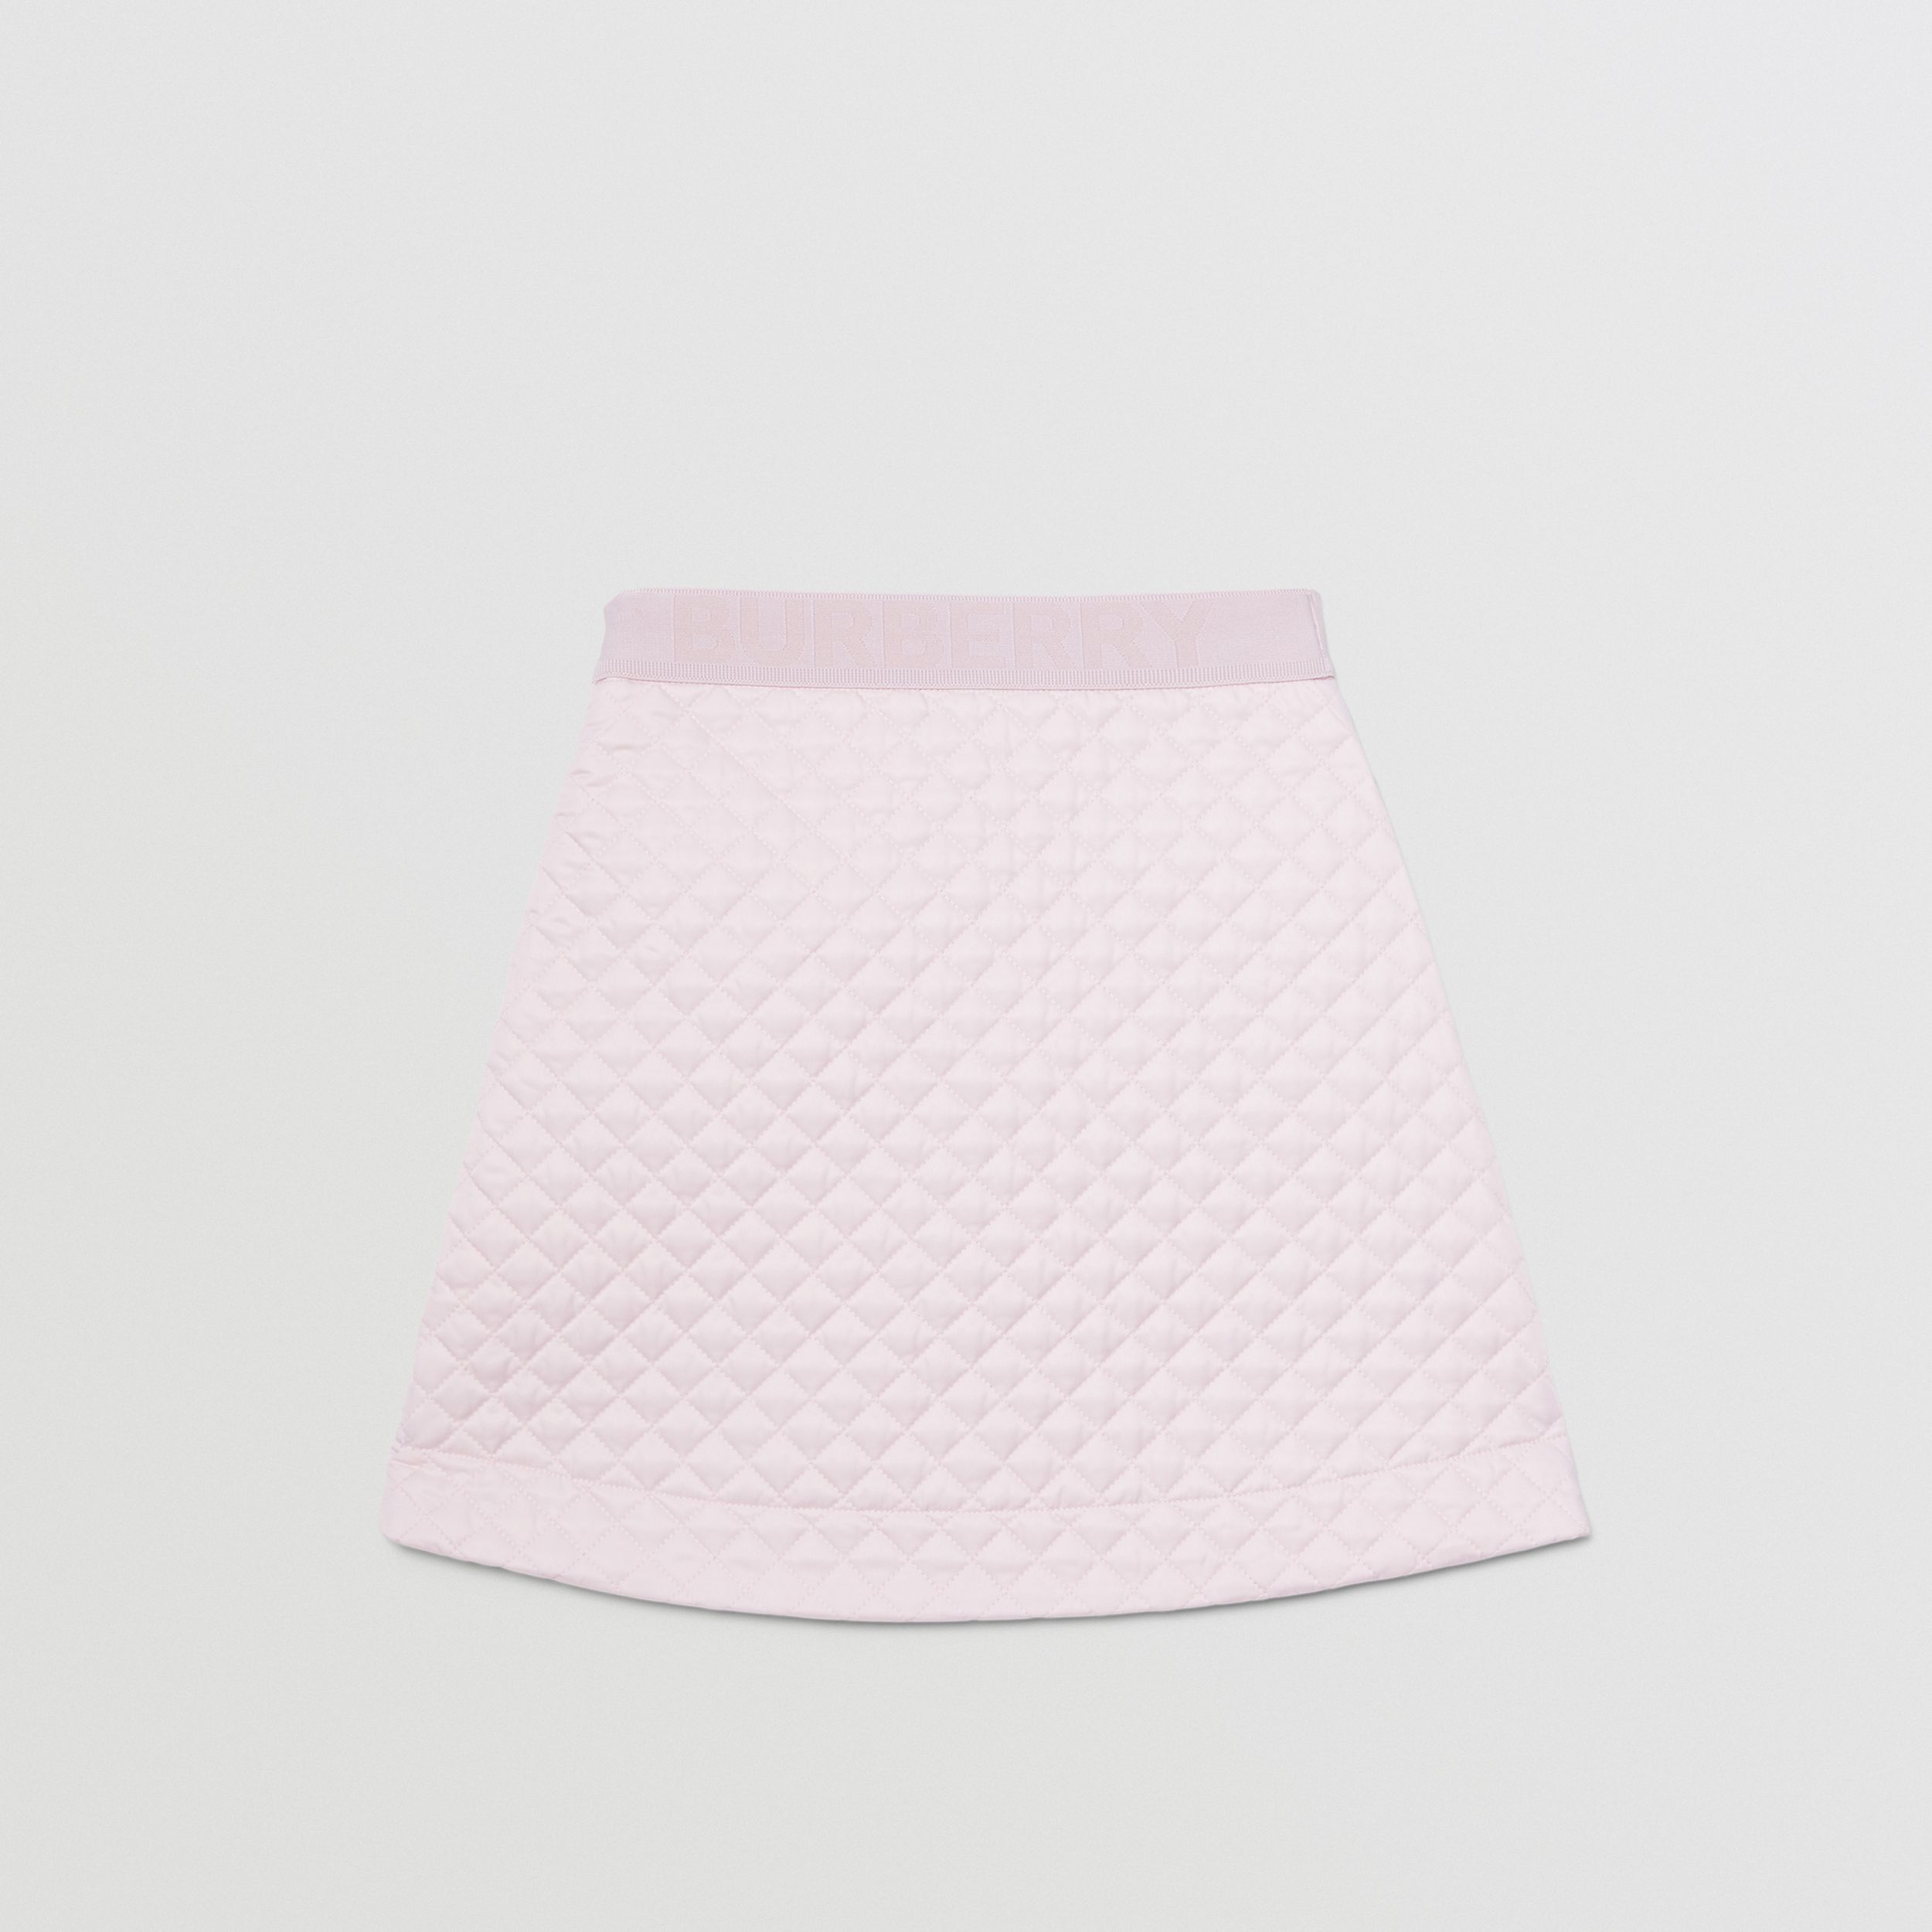 Monogram Quilted Panel Recycled Polyester Skirt in Pastel Pink | Burberry - 4